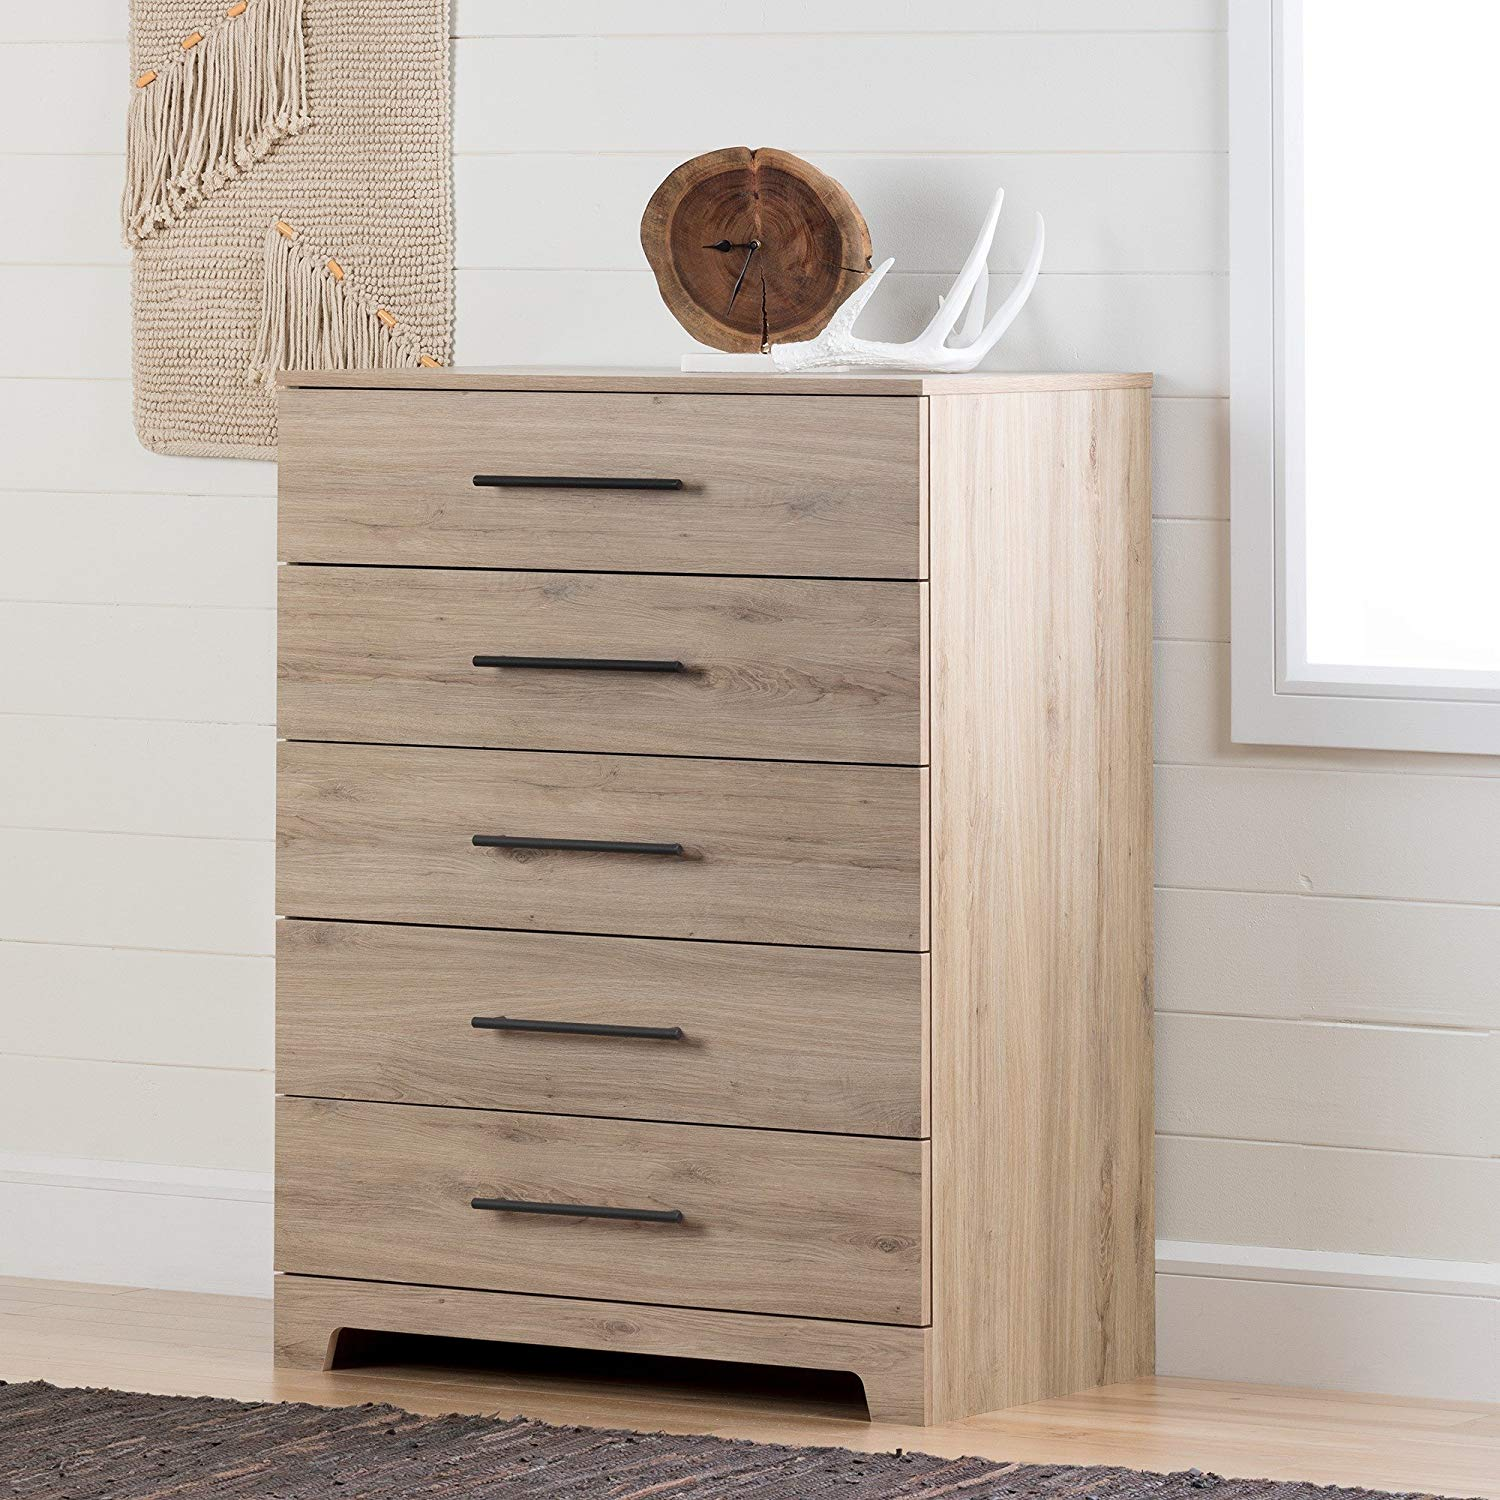 Elegant Bedroom 5-Drawer Chest With Contemporary Design, Modern Metal Handles In A Matte Black Finish, Metal Drawer Slides, Non-Toxic Laminated Particle Board Construction, Rustic Oak Finish